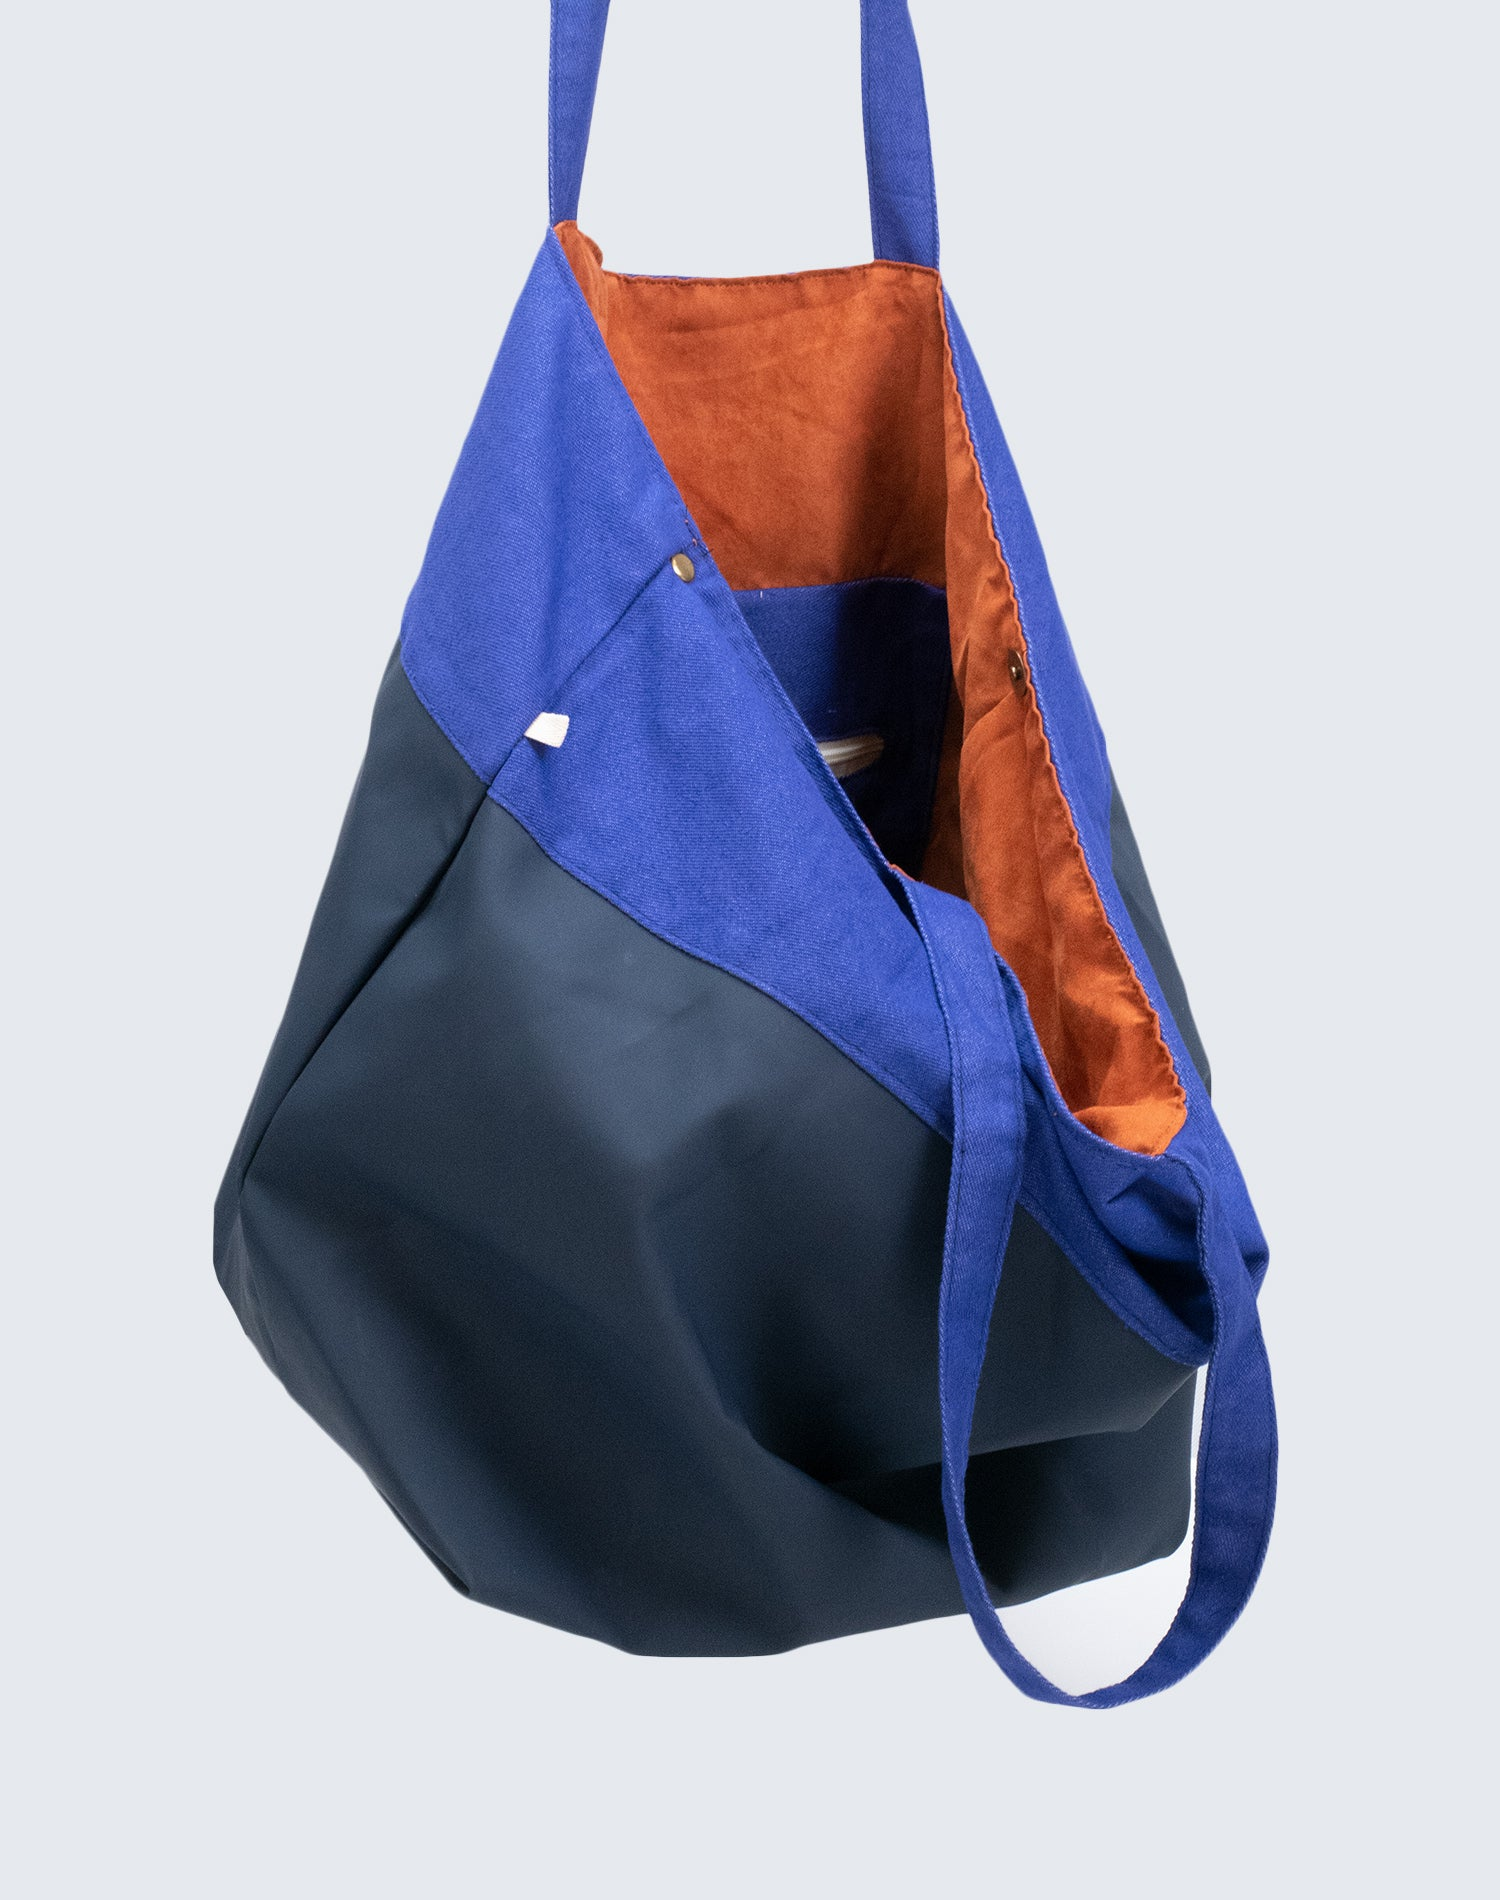 Big Ocean Blue Tote Bag.海藍色大容量側背袋